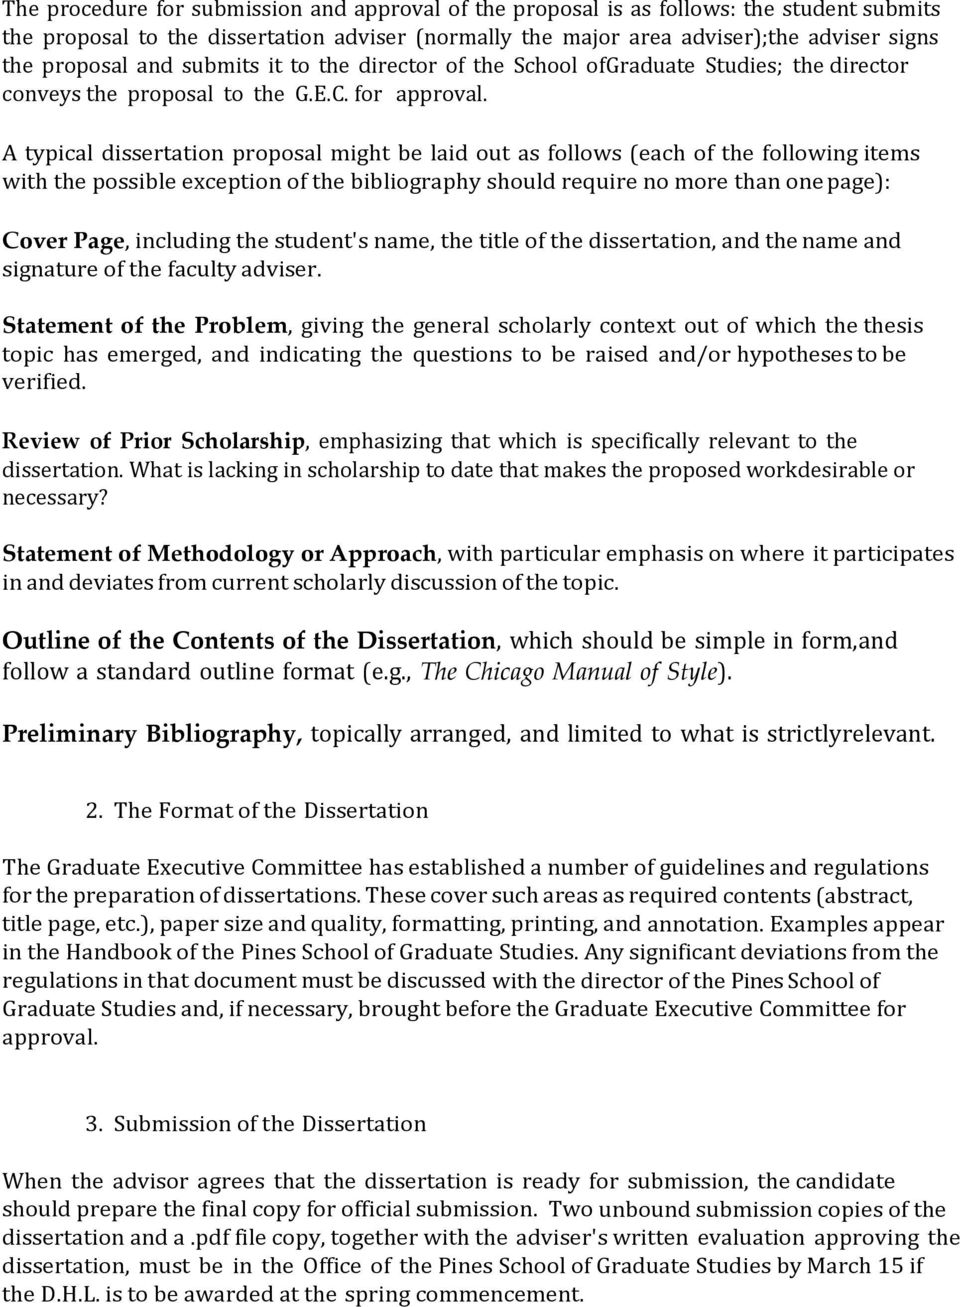 How should a dissertation be laid out